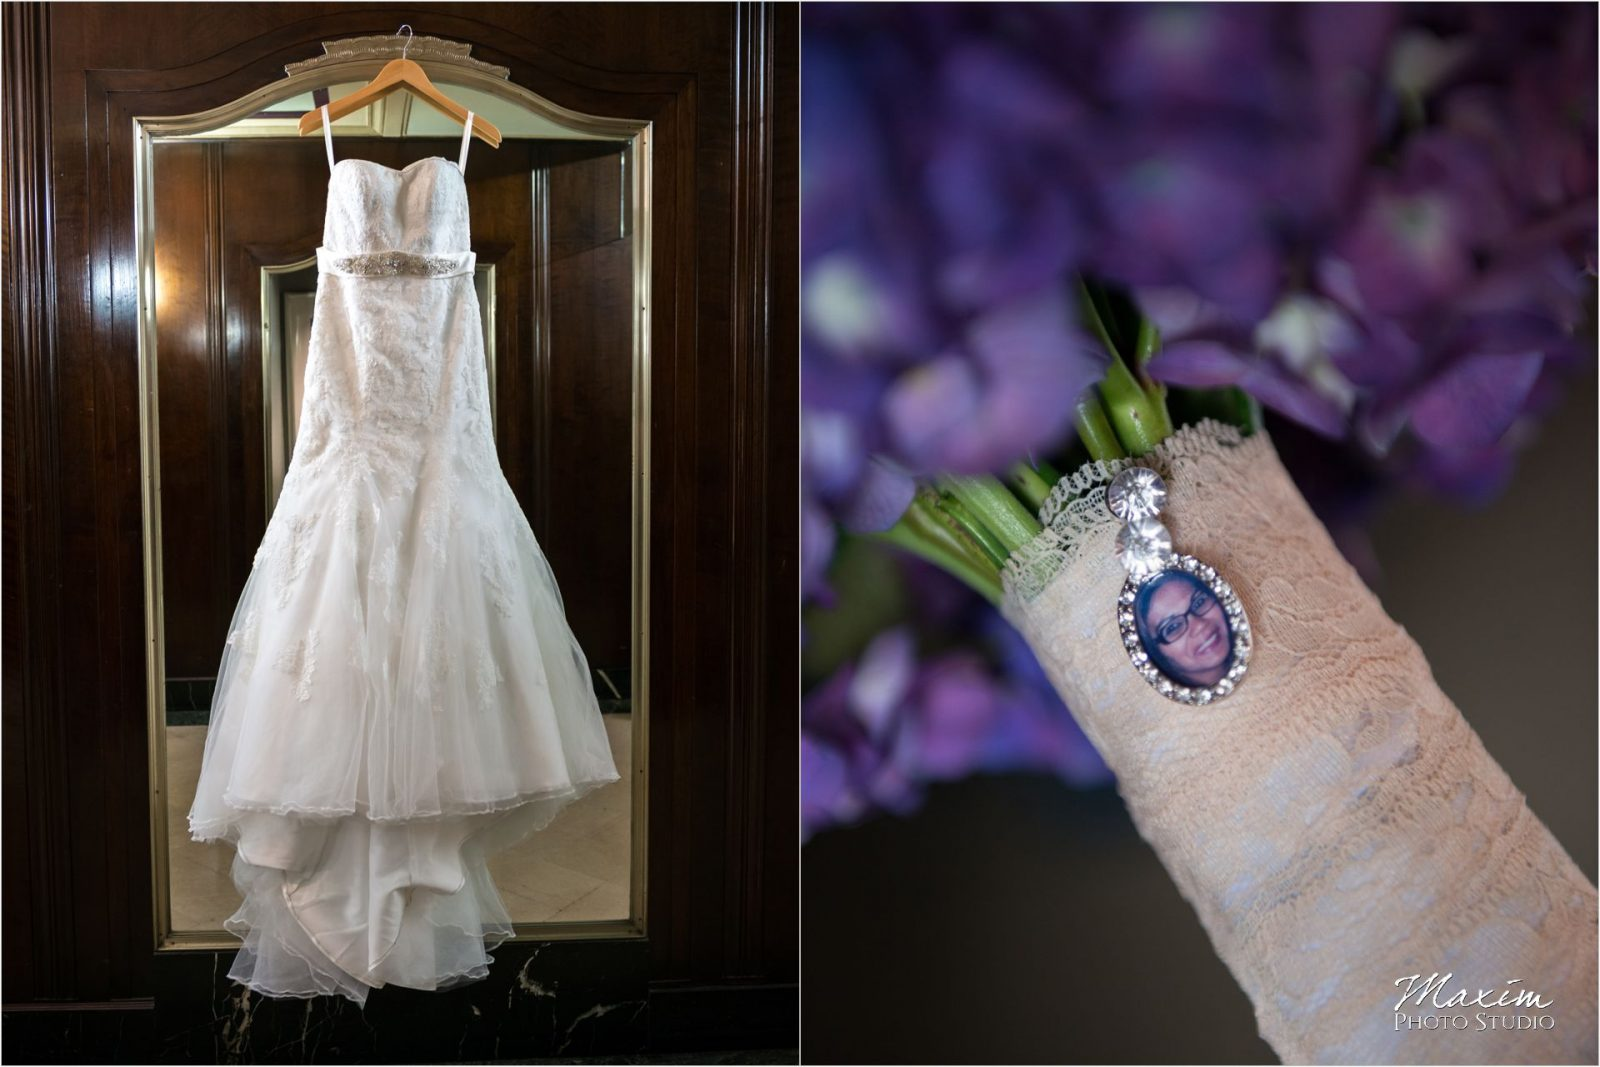 Hilton Cincinnati Netherland Plaza Wedding Dress